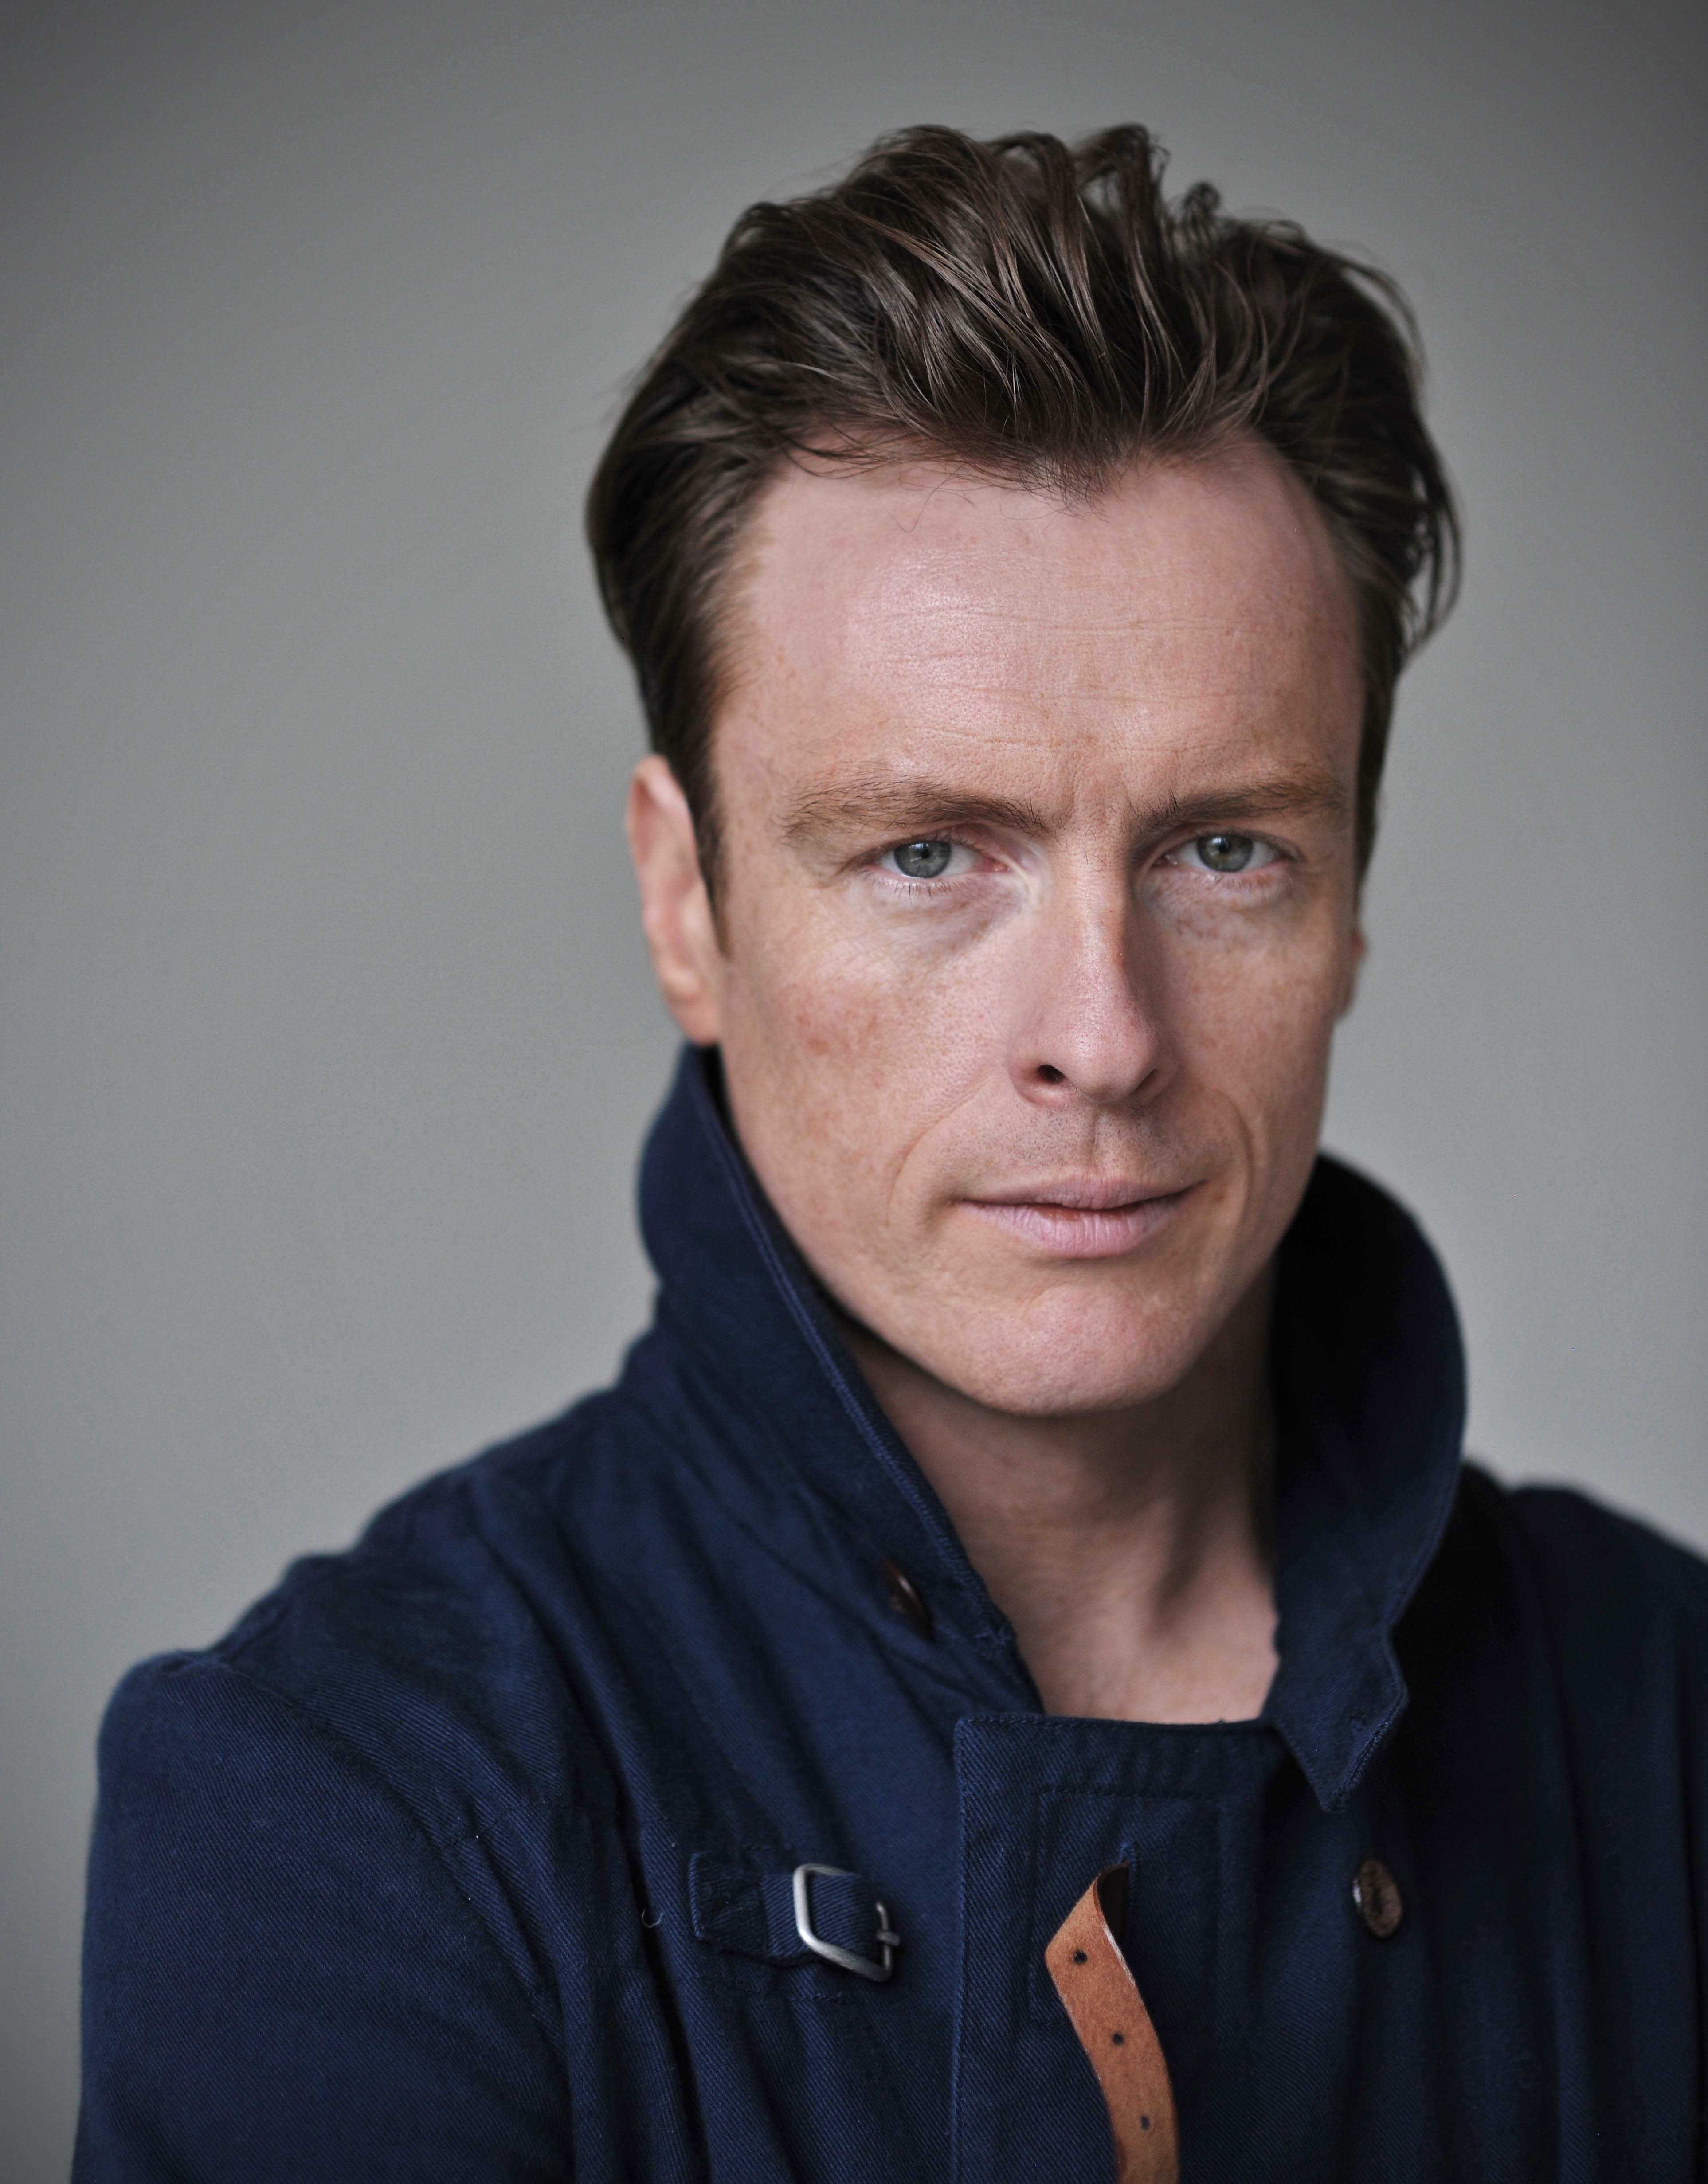 Toby Stephens photo, pics, wallpaper - photo #